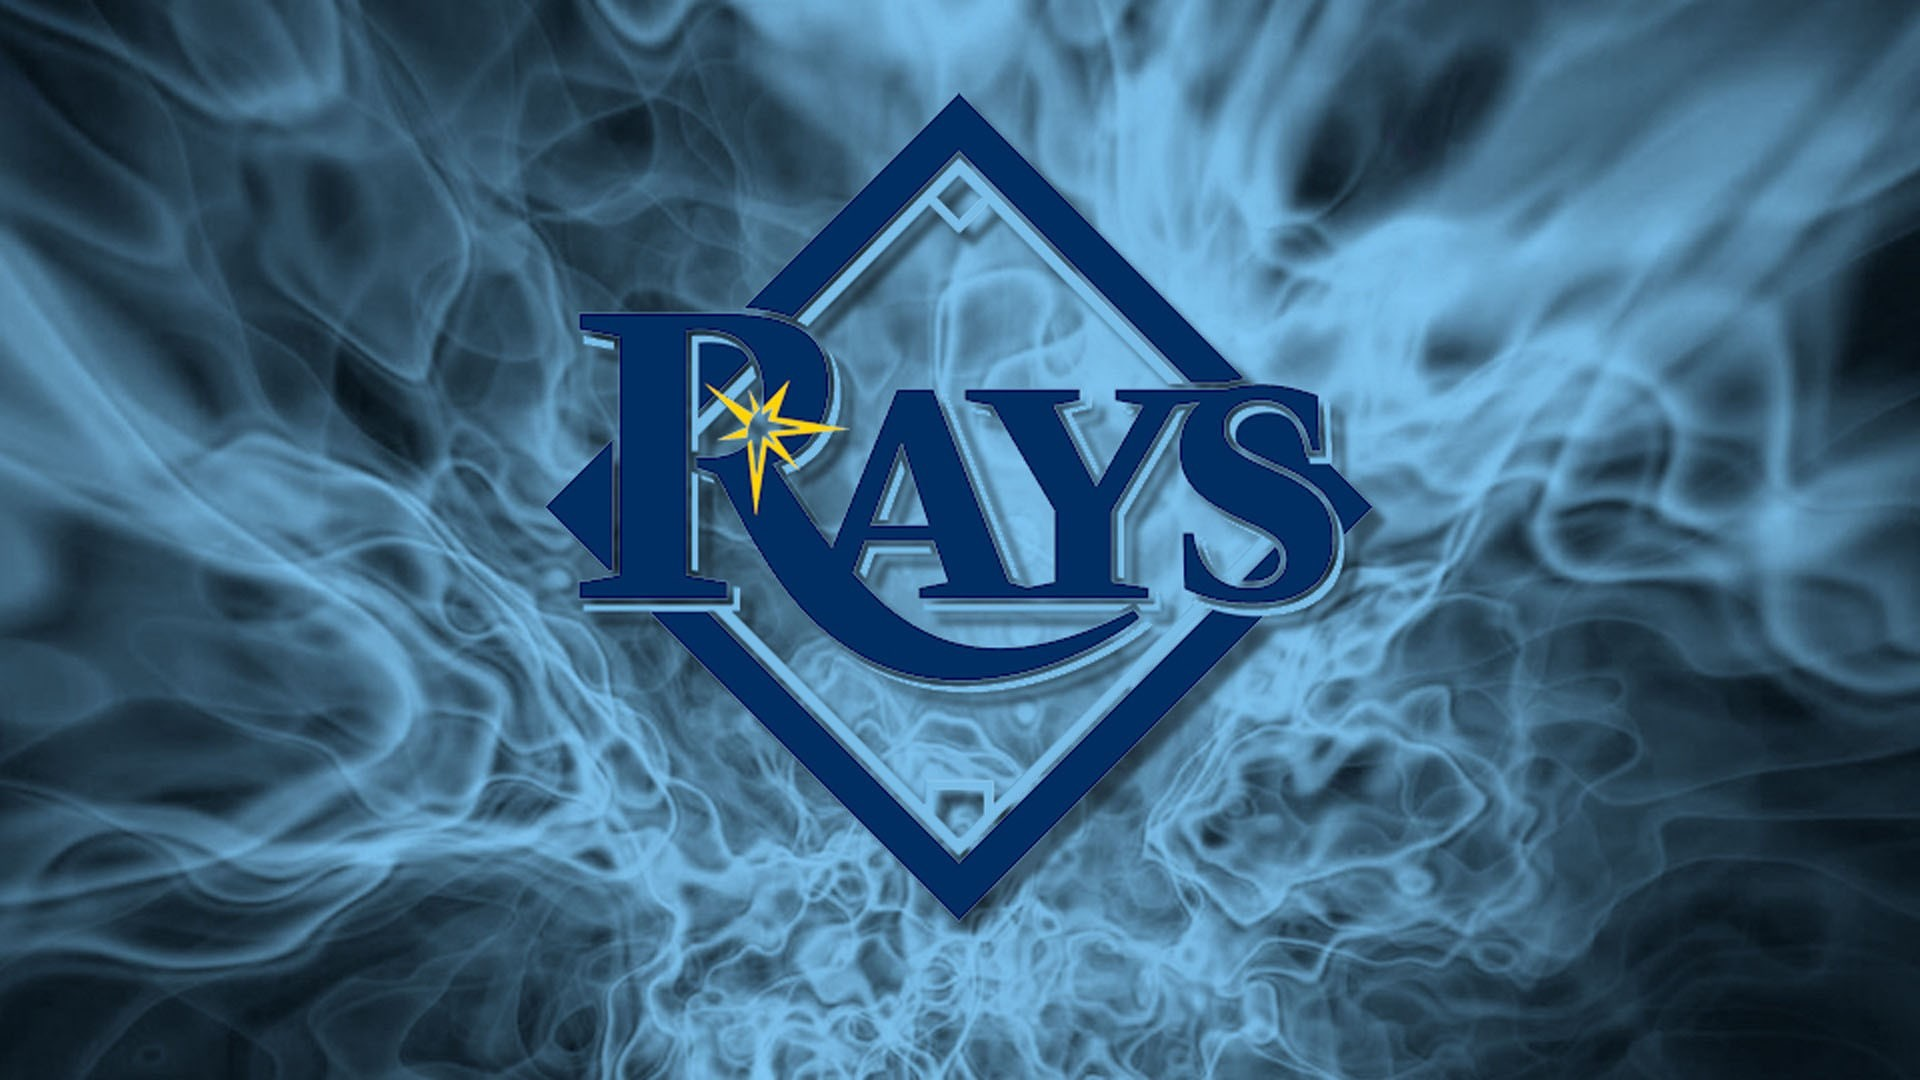 Compared the traditional look of today's nfl branding, the 1990s were downright wild. Tampa Bay Rays Wallpapers (62+ pictures)